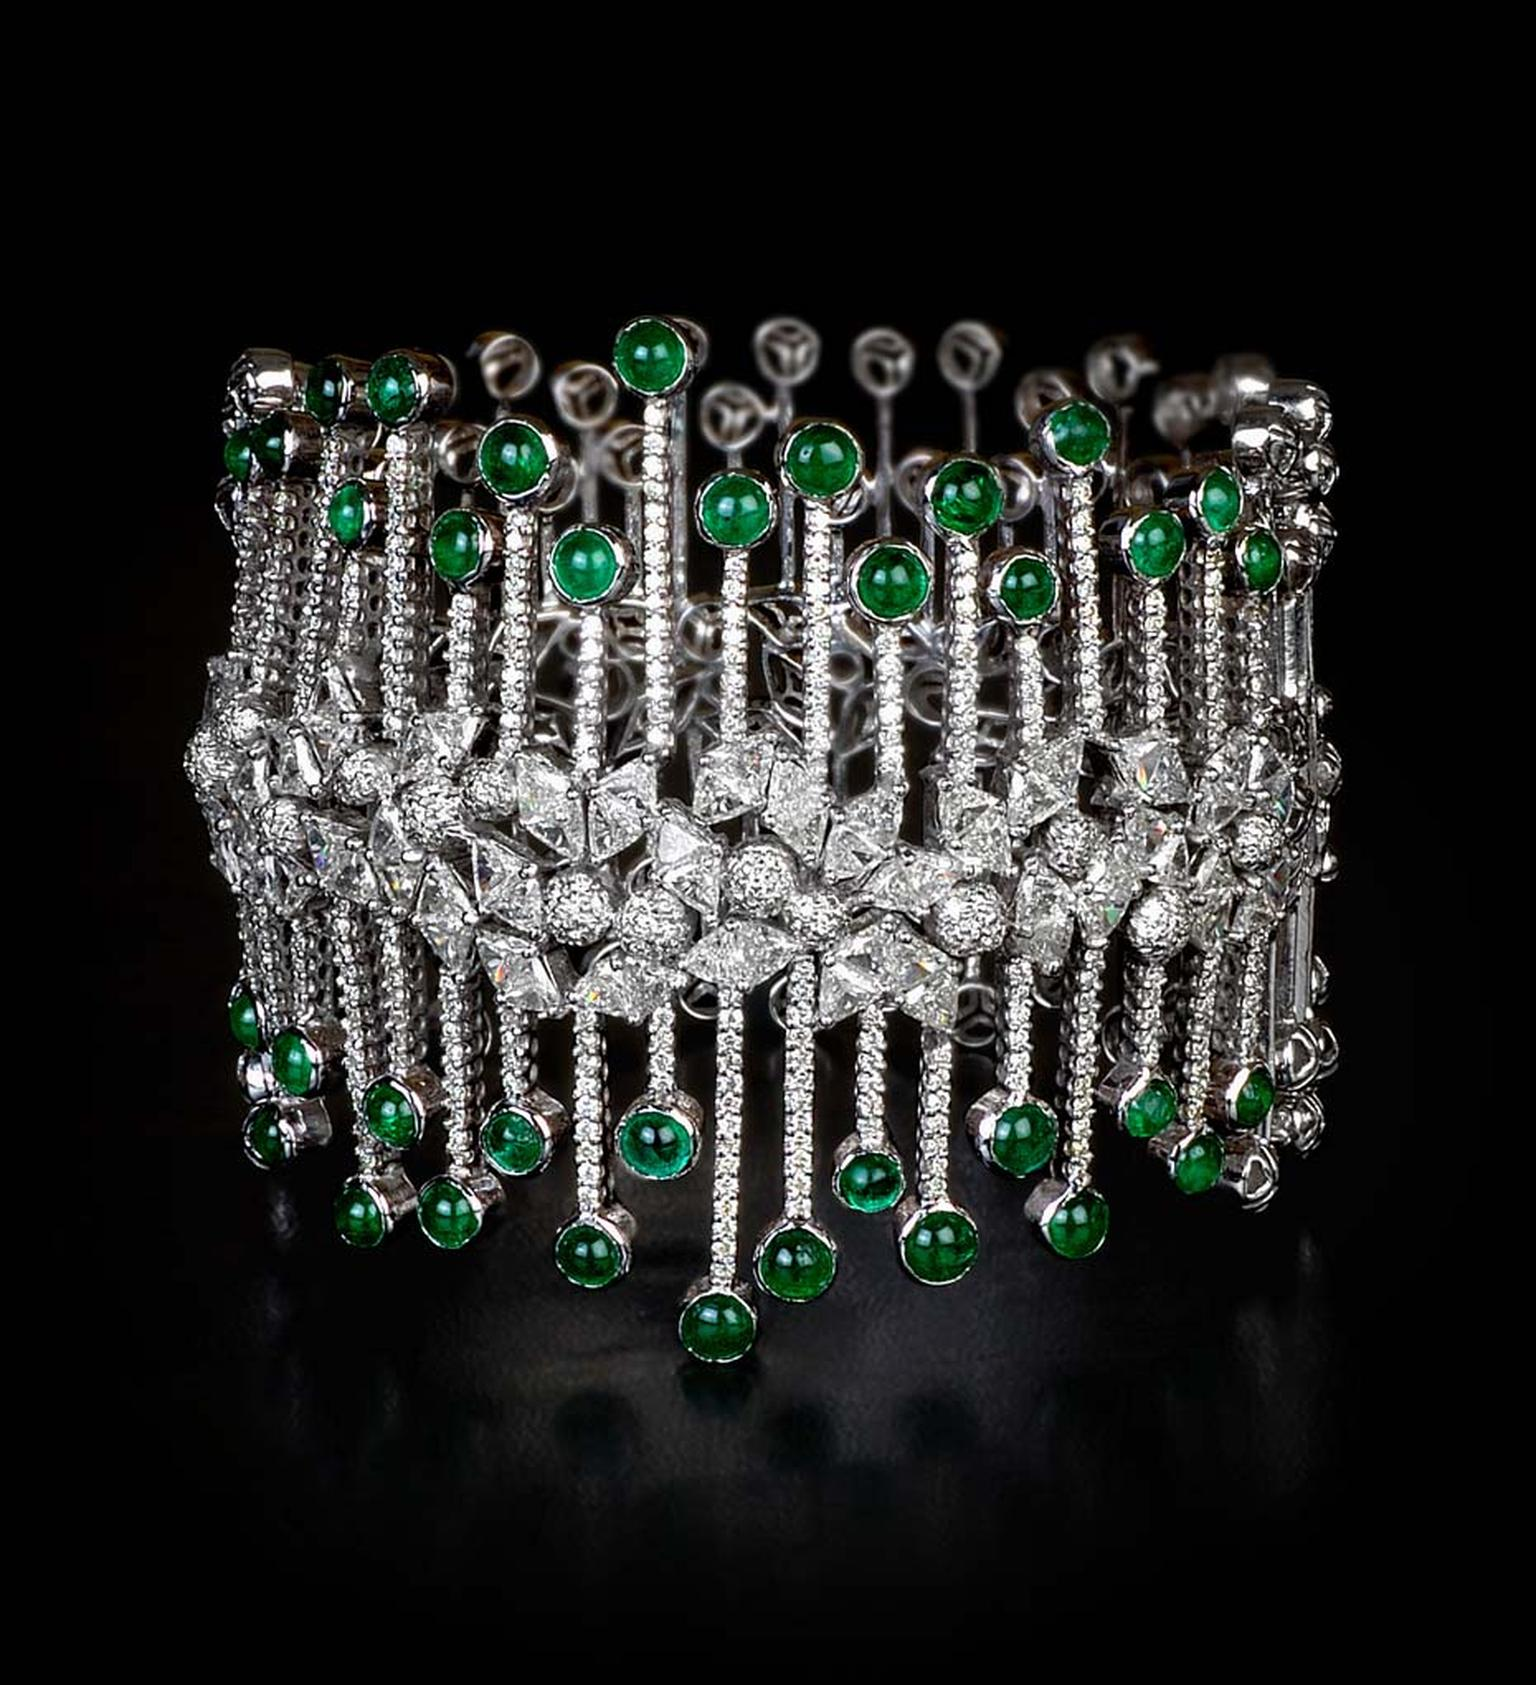 MINAWALA Festival of Emeralds collection bracelet in white gold with diamonds and emeralds